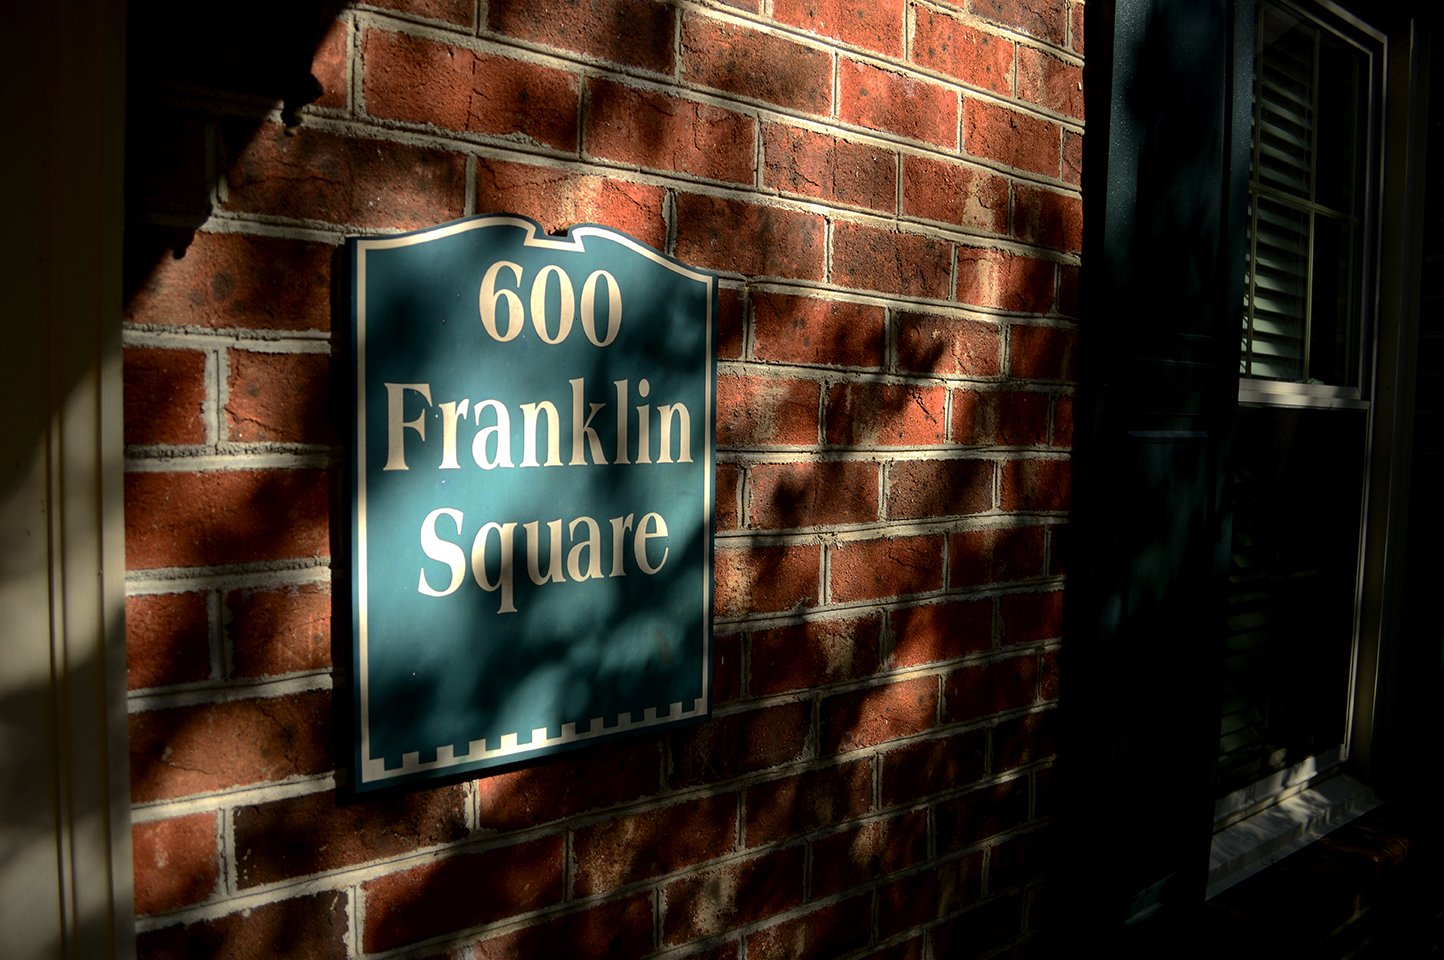 600 Franklin Square